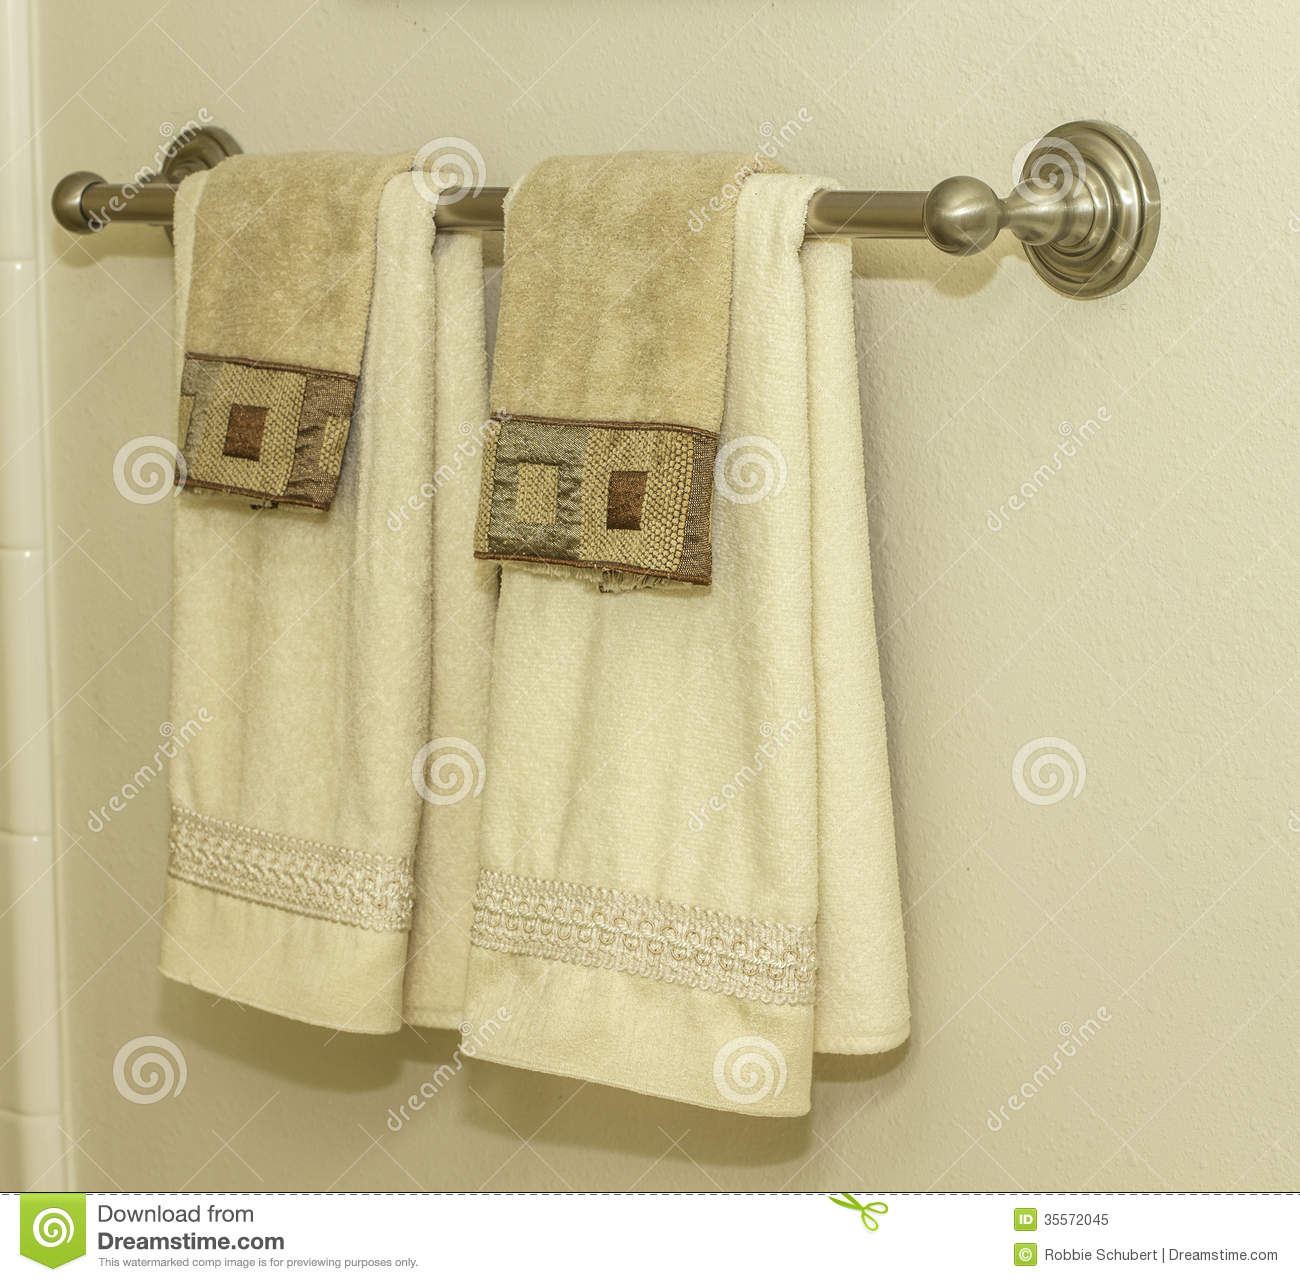 Magnificent 25 Bathroom Towel Racks Design Ideas Of Best